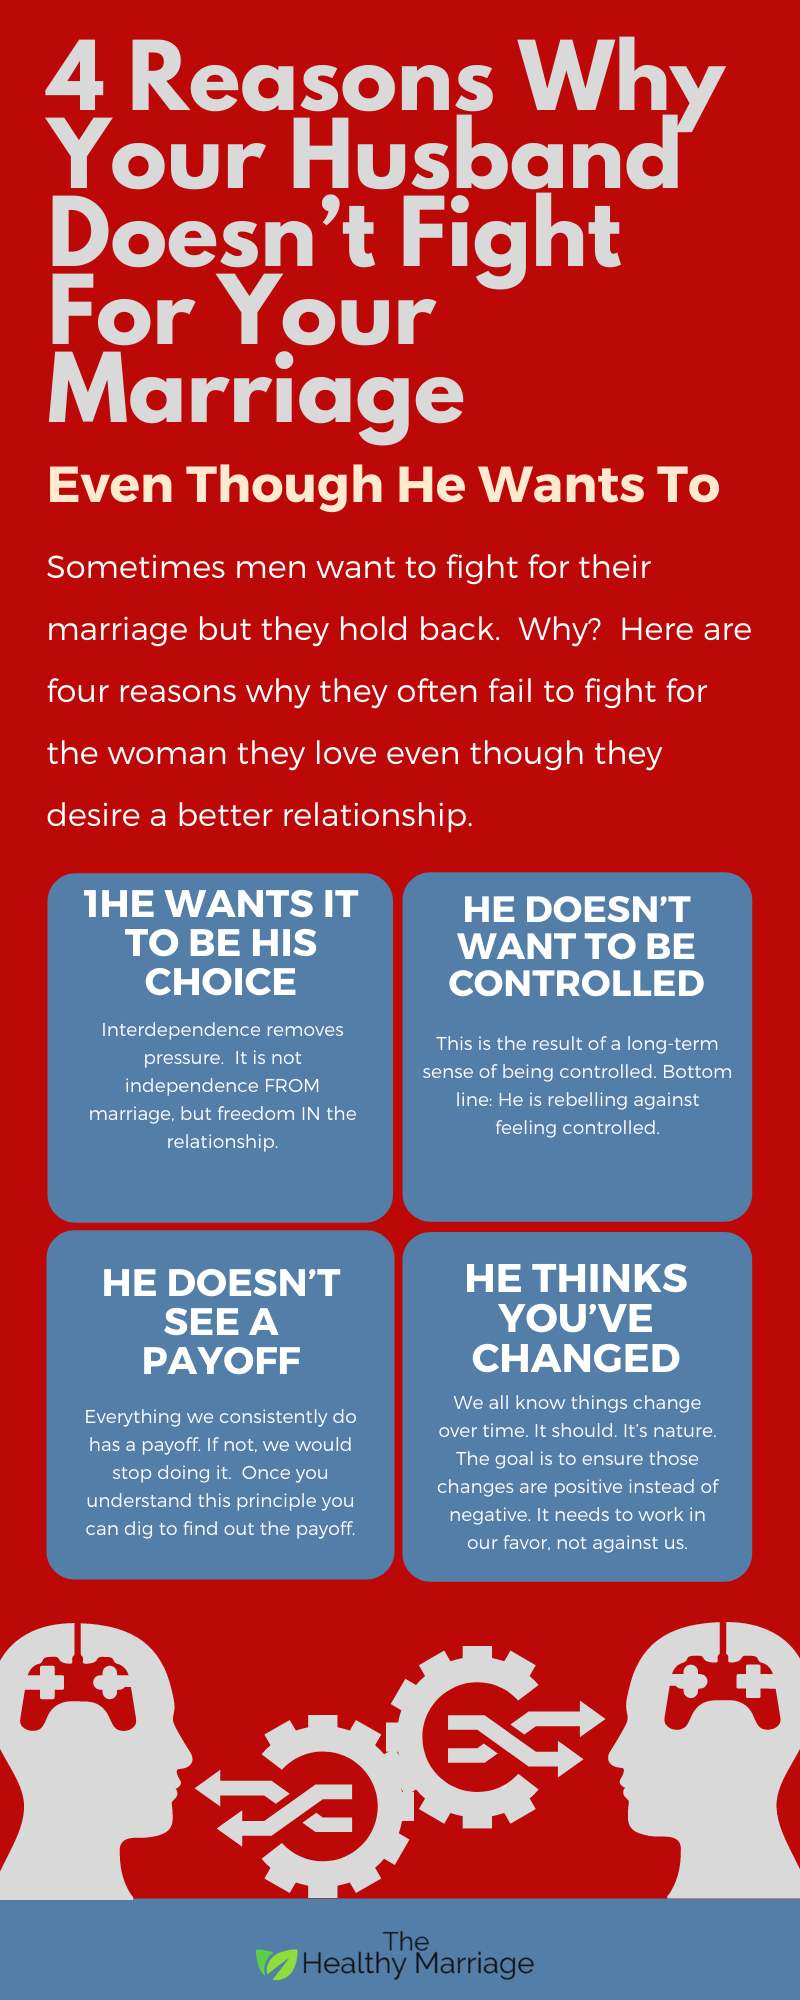 Infographic 4 reasons your husband doesn't fight for your relaitonship